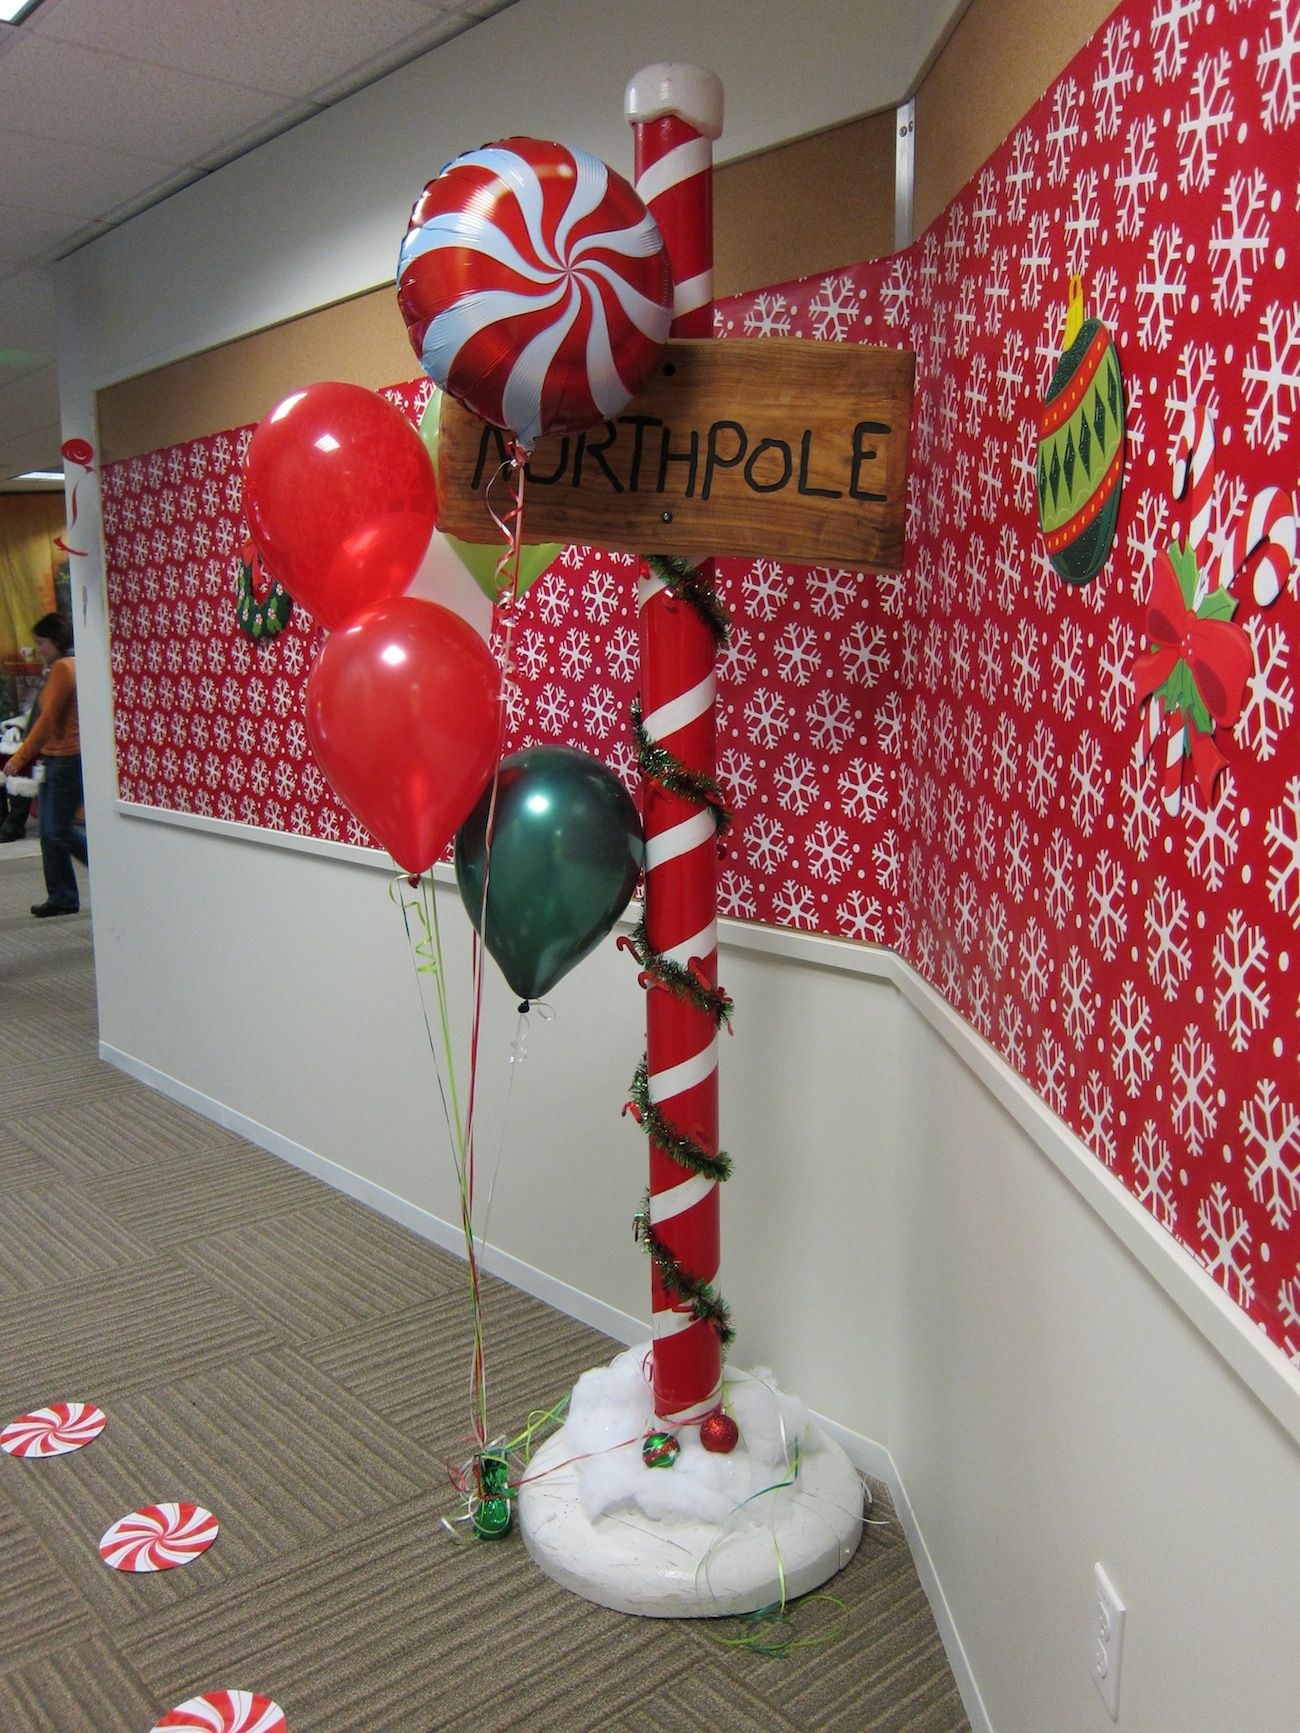 North pole decor first birthday party ideas pinterest for Xmas office design